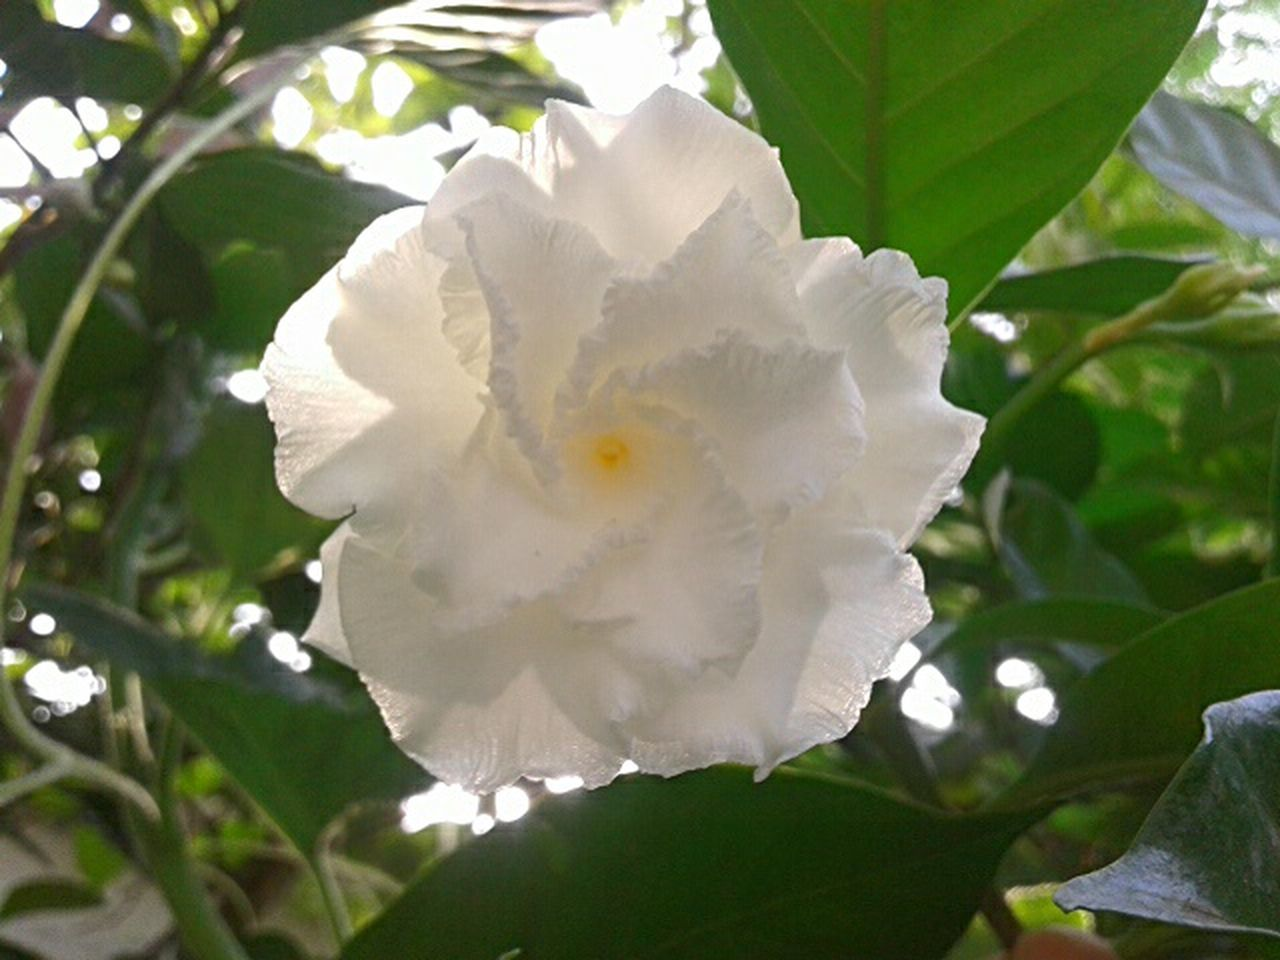 flower, petal, white color, beauty in nature, nature, growth, fragility, day, flower head, blooming, leaf, outdoors, plant, freshness, close-up, no people, wild rose, tree